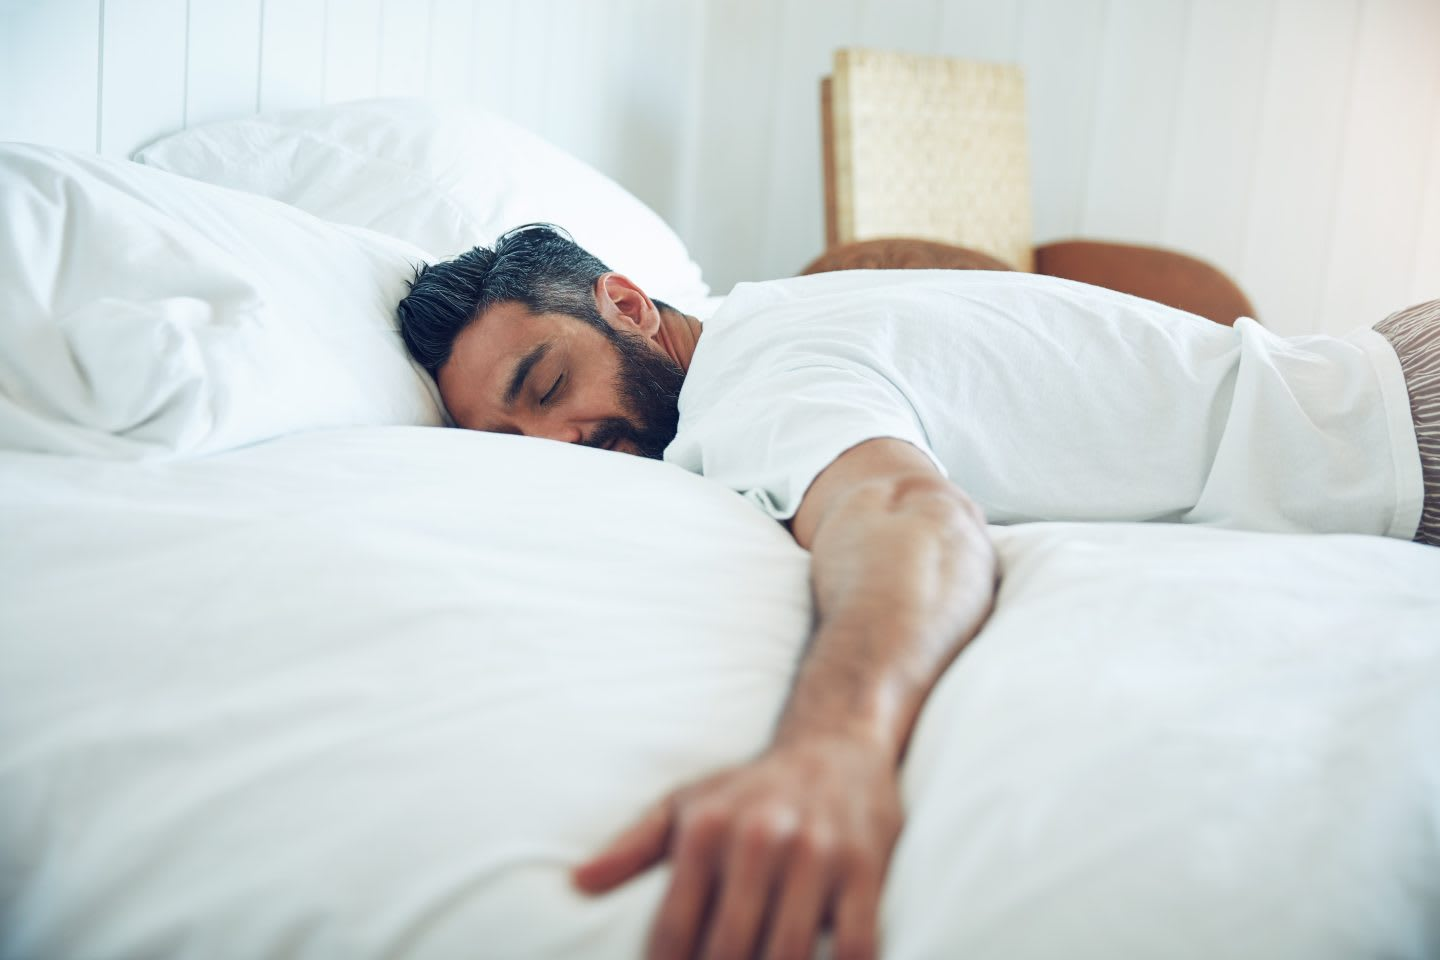 Shot of a mature man lying on his bed and sleeping. sleeping, comfort, snoozing, sleep pattern, bed